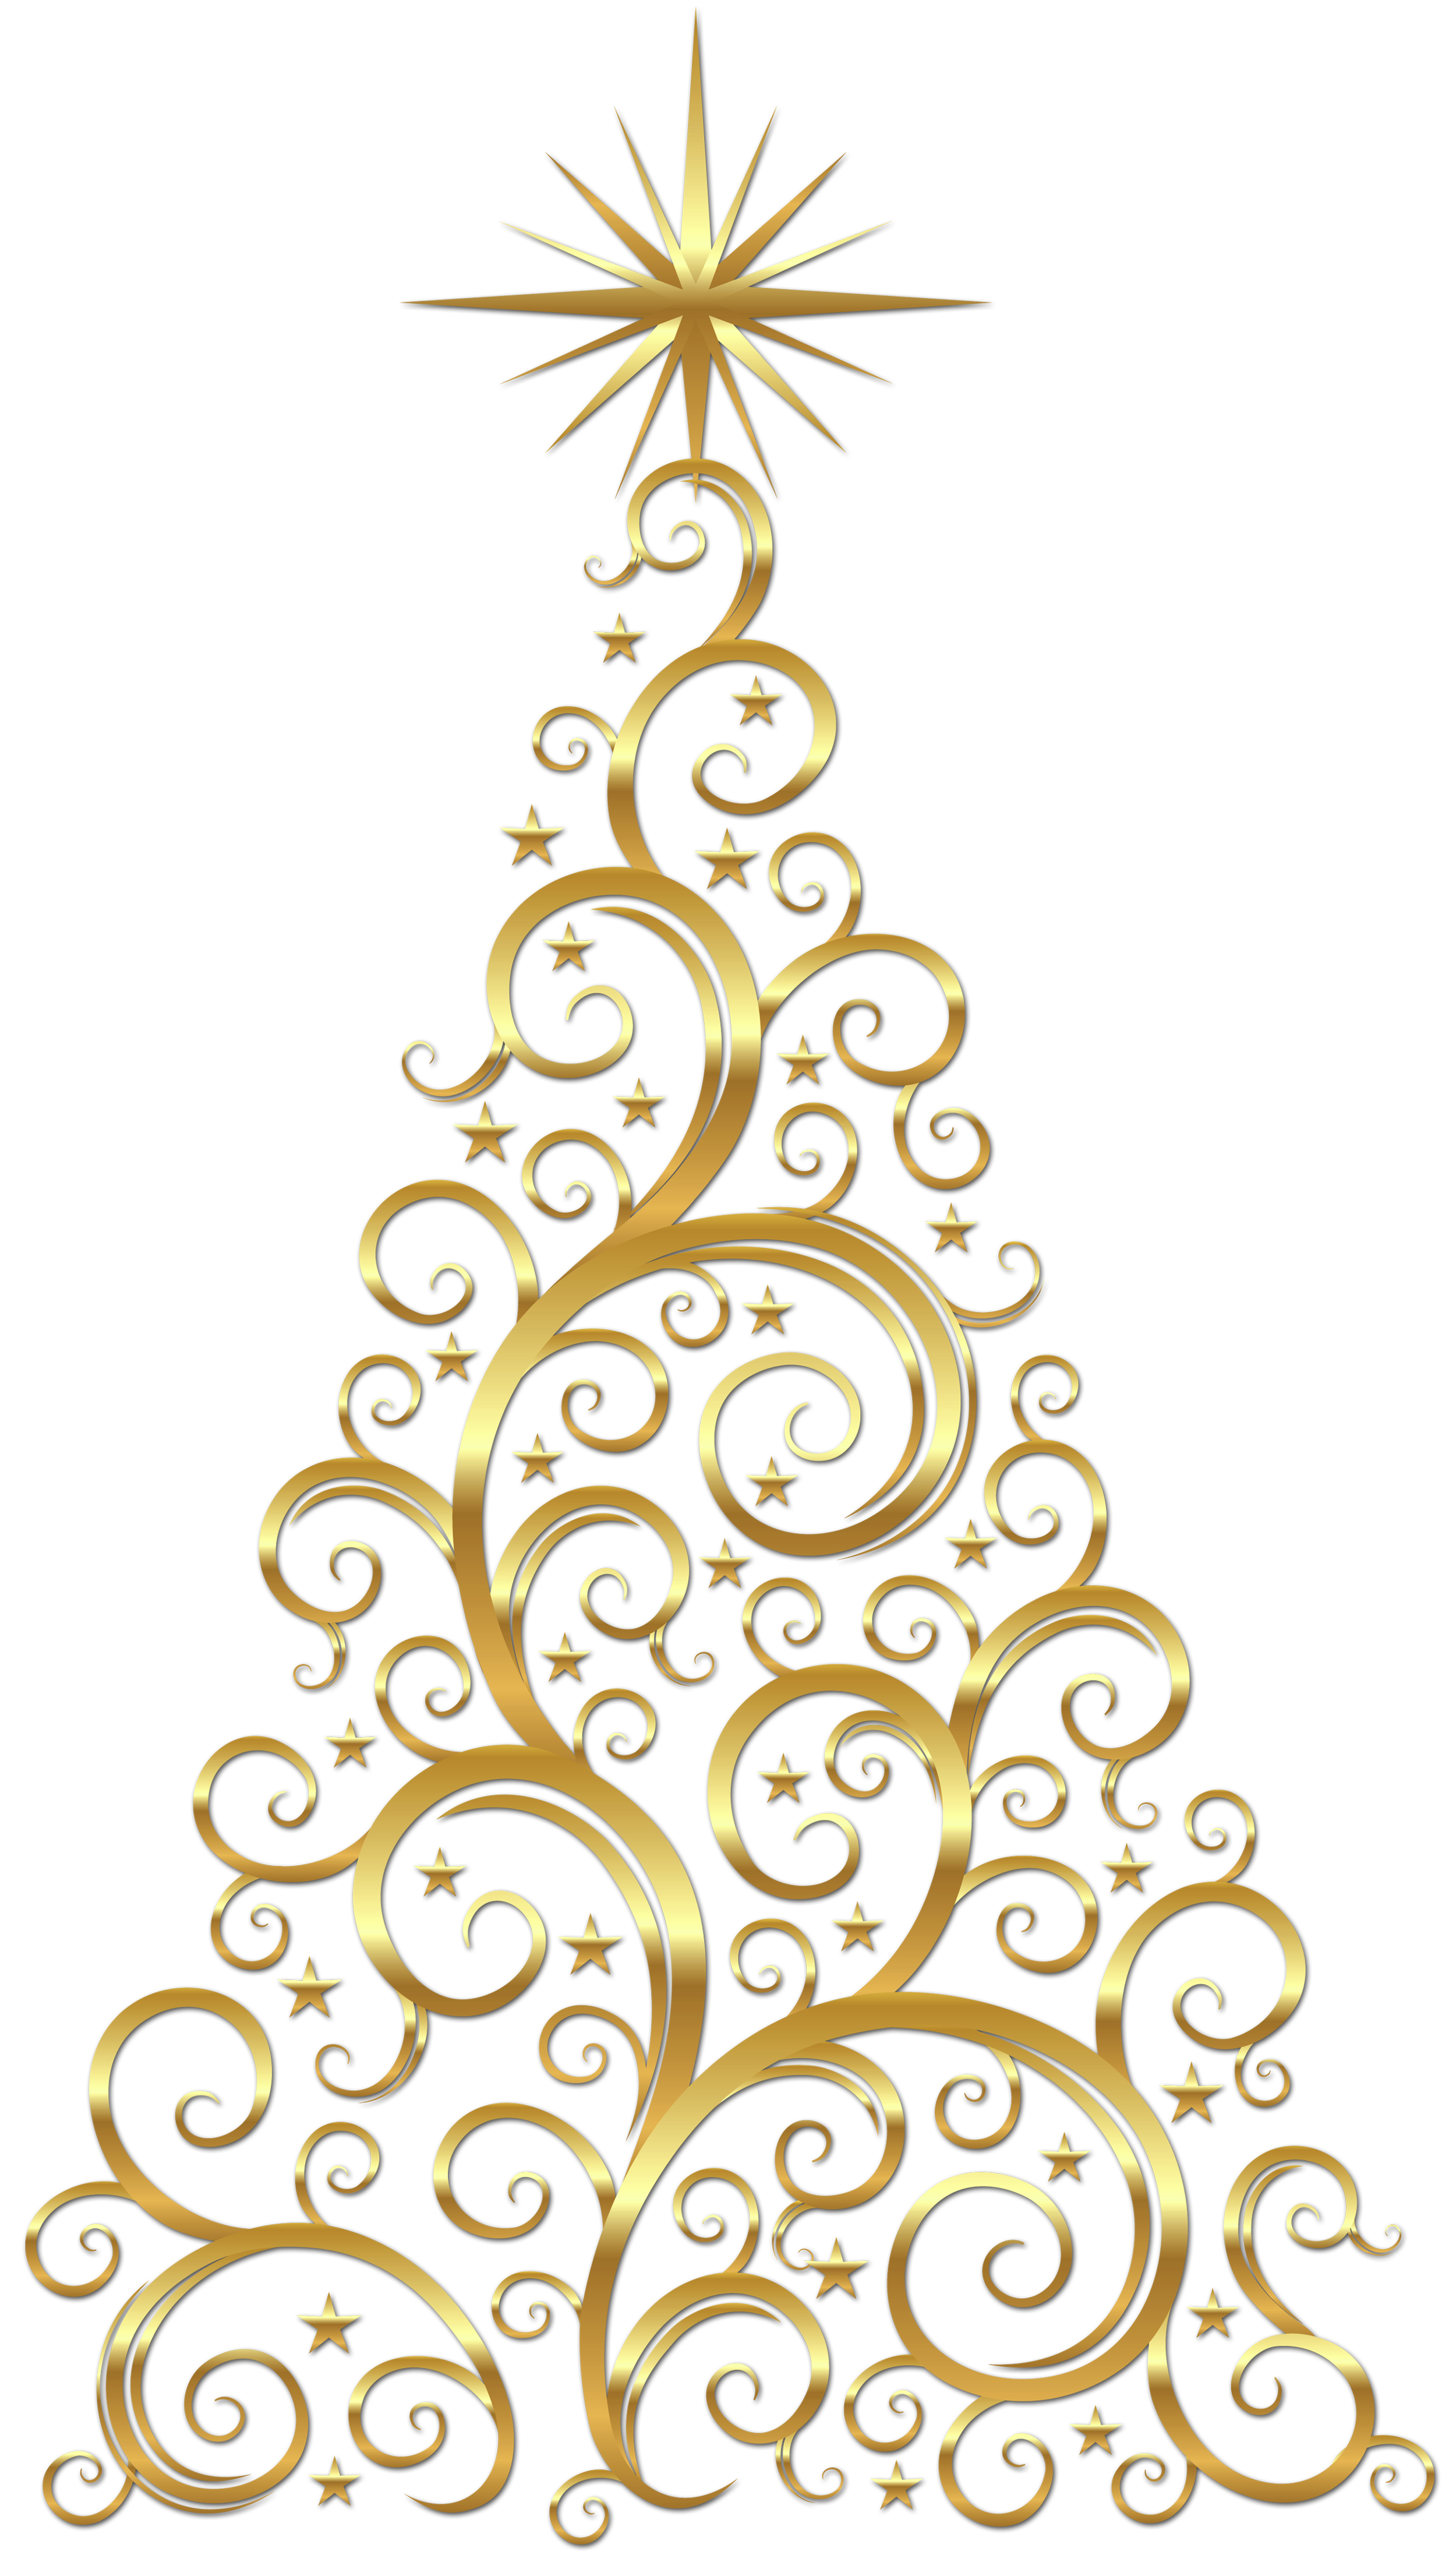 Abstract christmas tree clipart png png download 28+ Collection of Abstract Christmas Tree Clipart | High quality ... png download